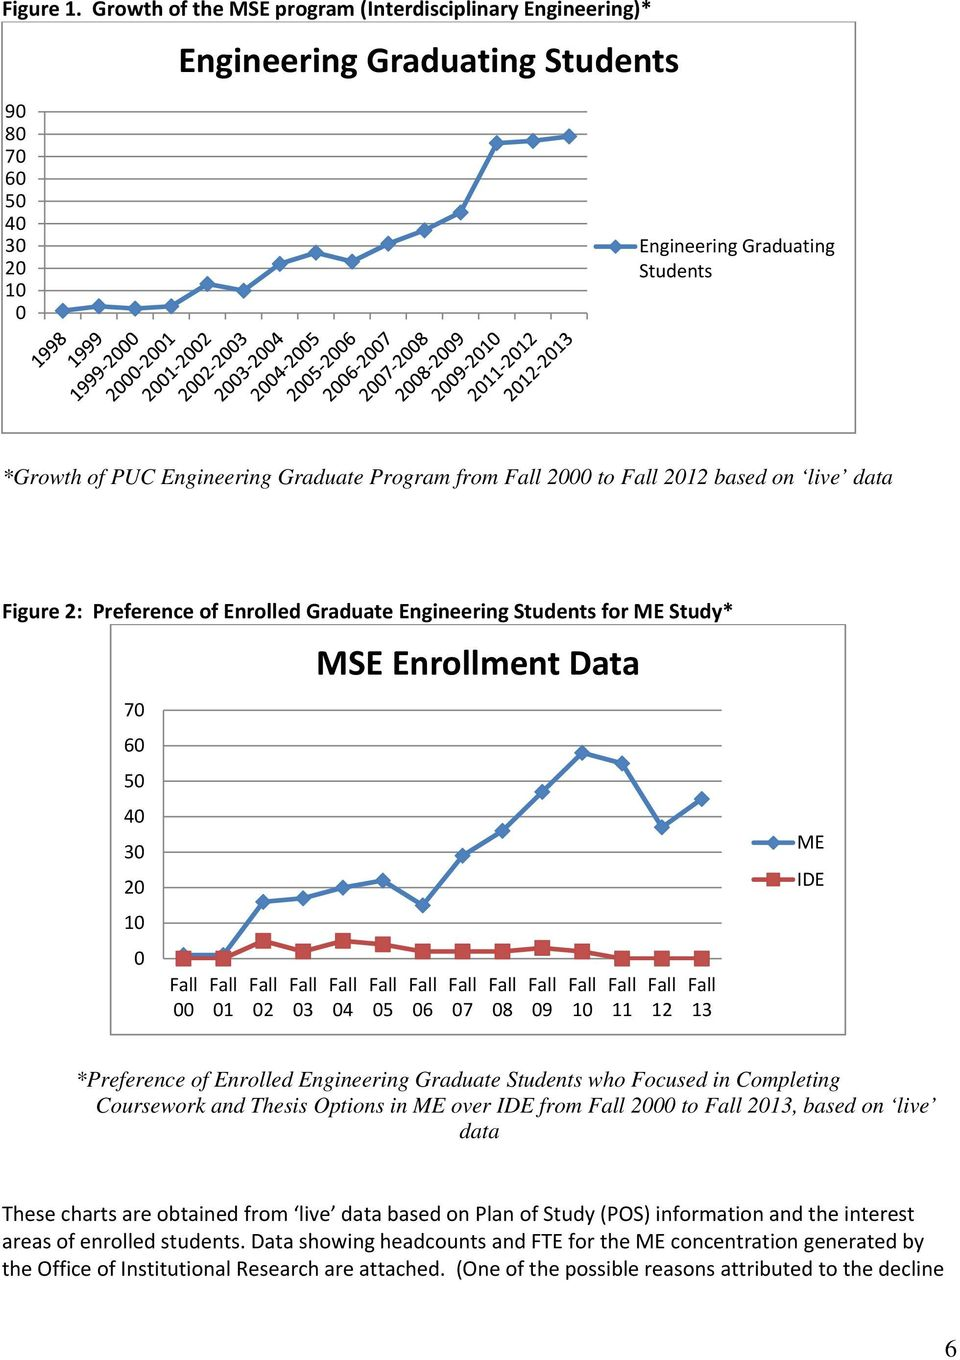 from 2000 to 2012 based on live data Figure 2: Preference of Enrolled Graduate Engineering Students for ME Study* 70 60 50 40 30 20 10 0 00 01 02 03 MSE Enrollment Data 04 05 06 07 08 09 10 11 12 13